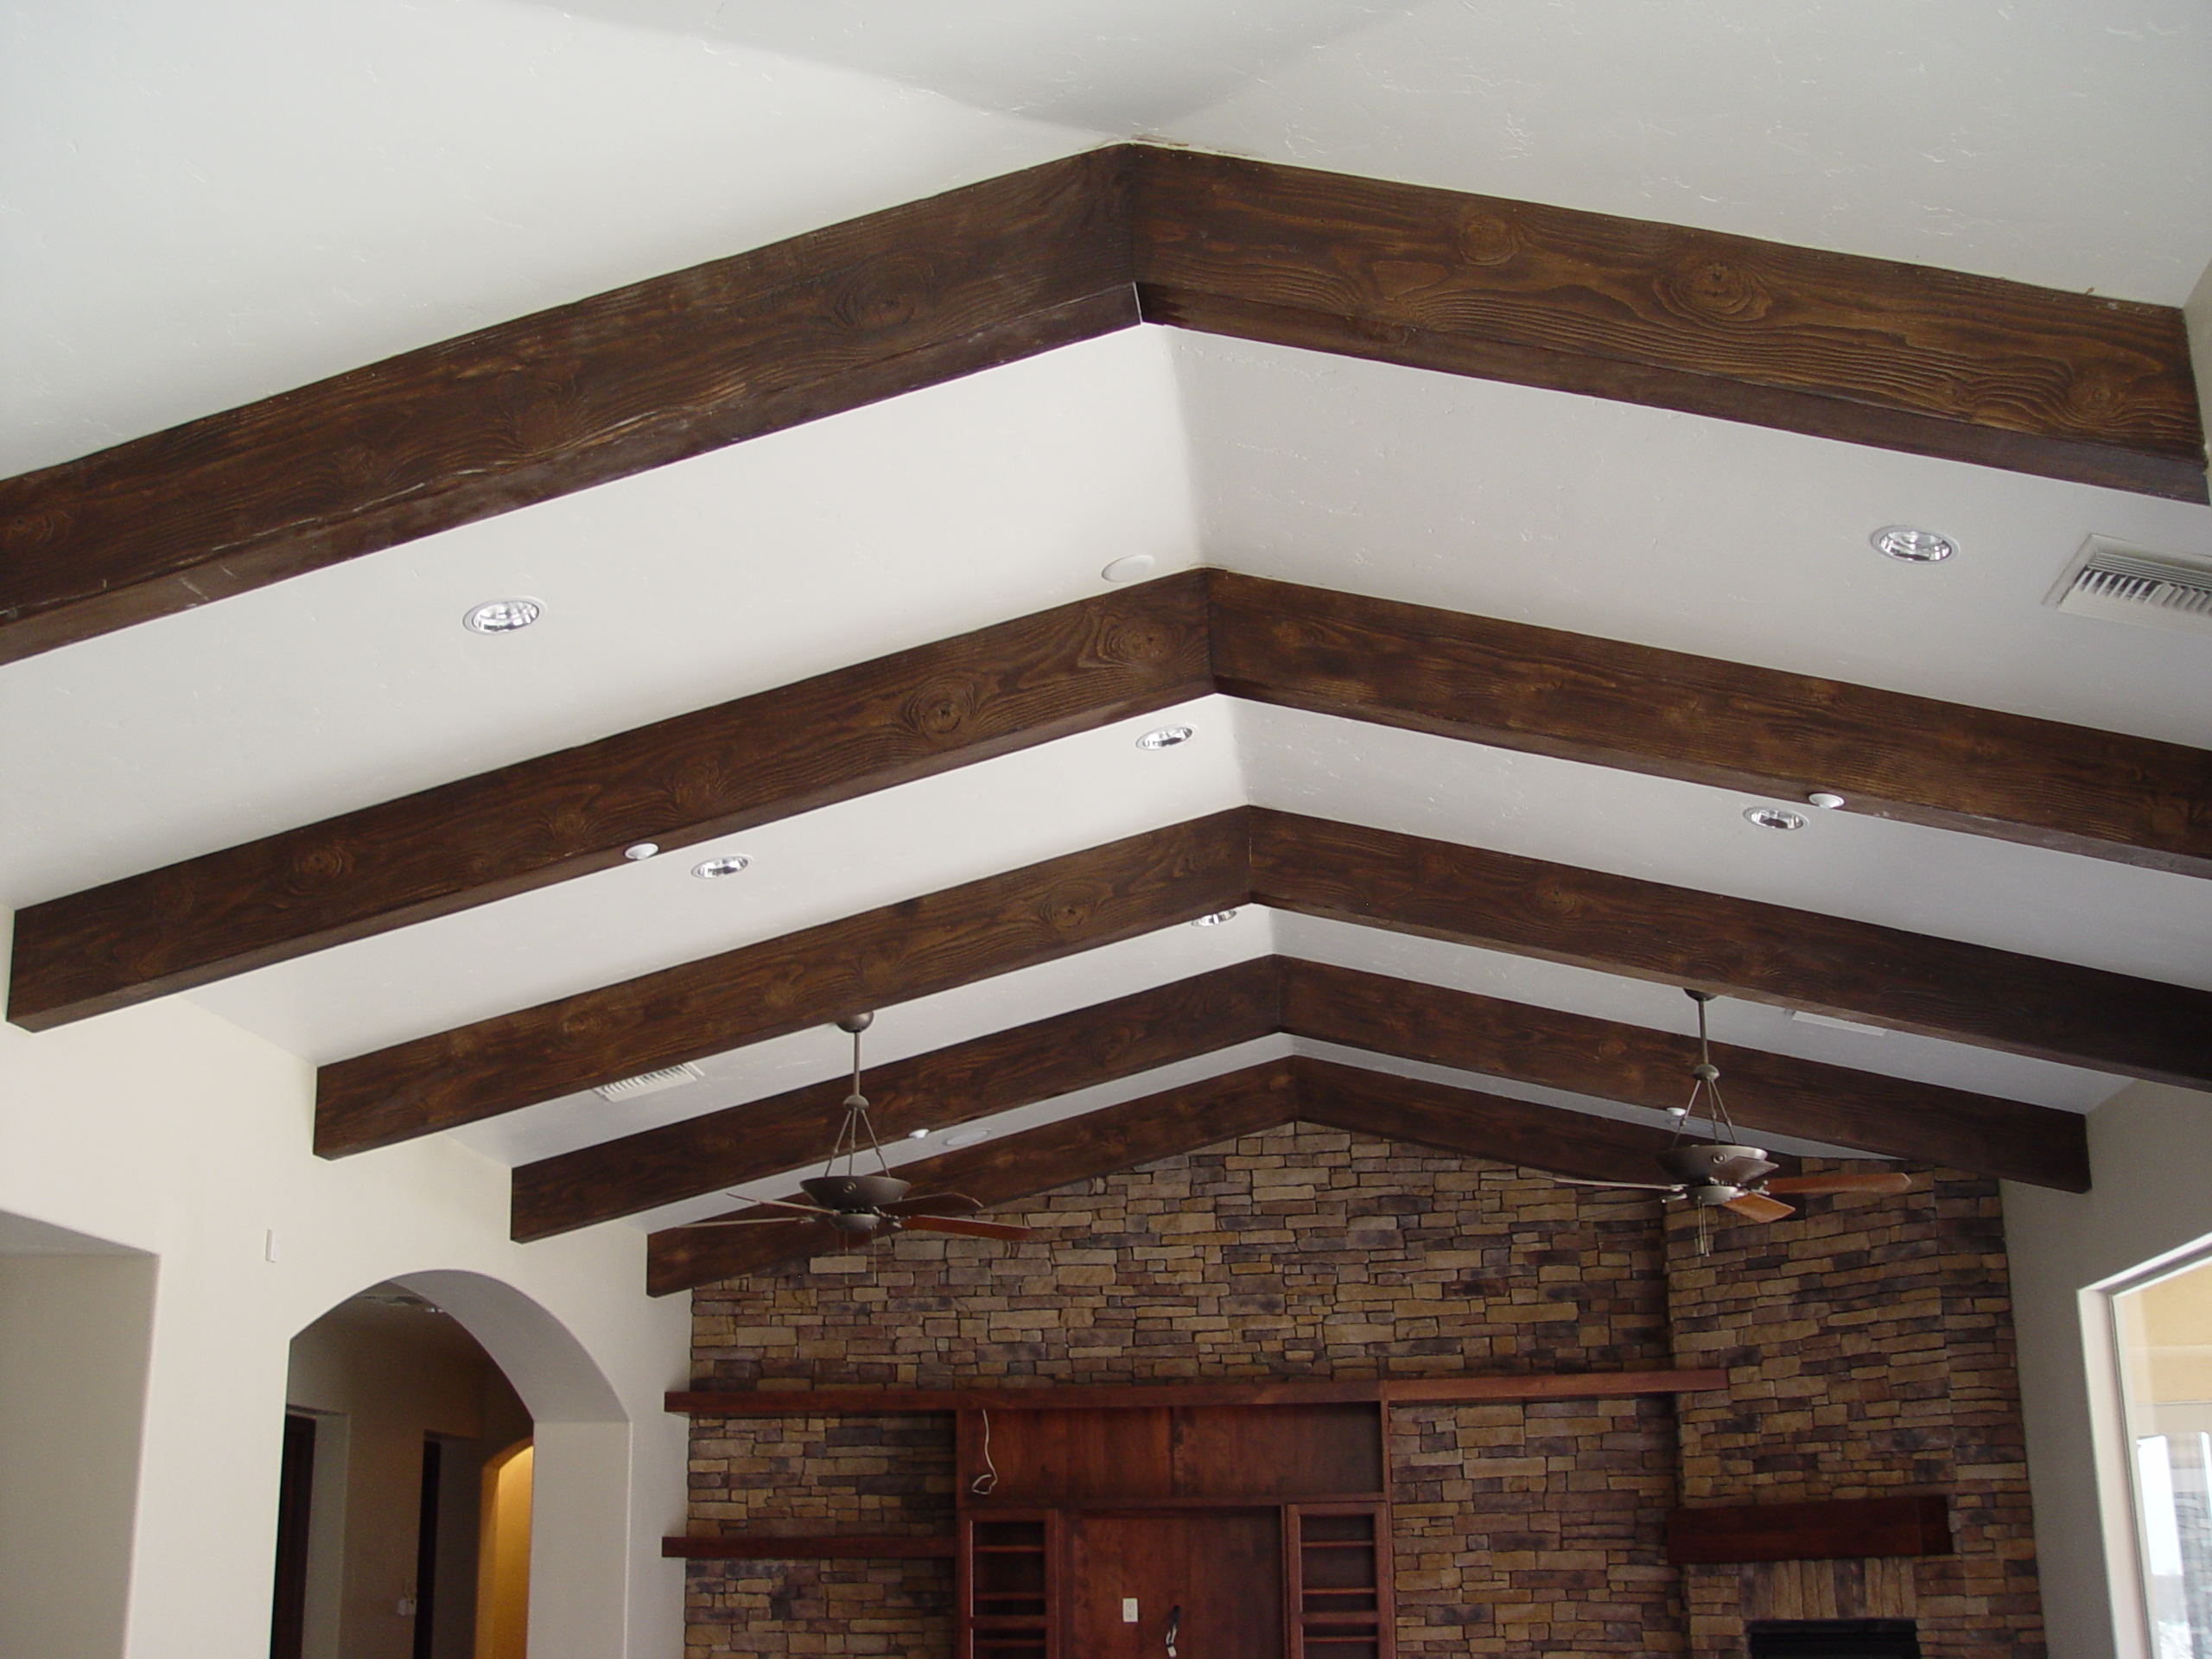 ELEVATE YOUR CEILINGS WITH FAUX WOOD BEAMS